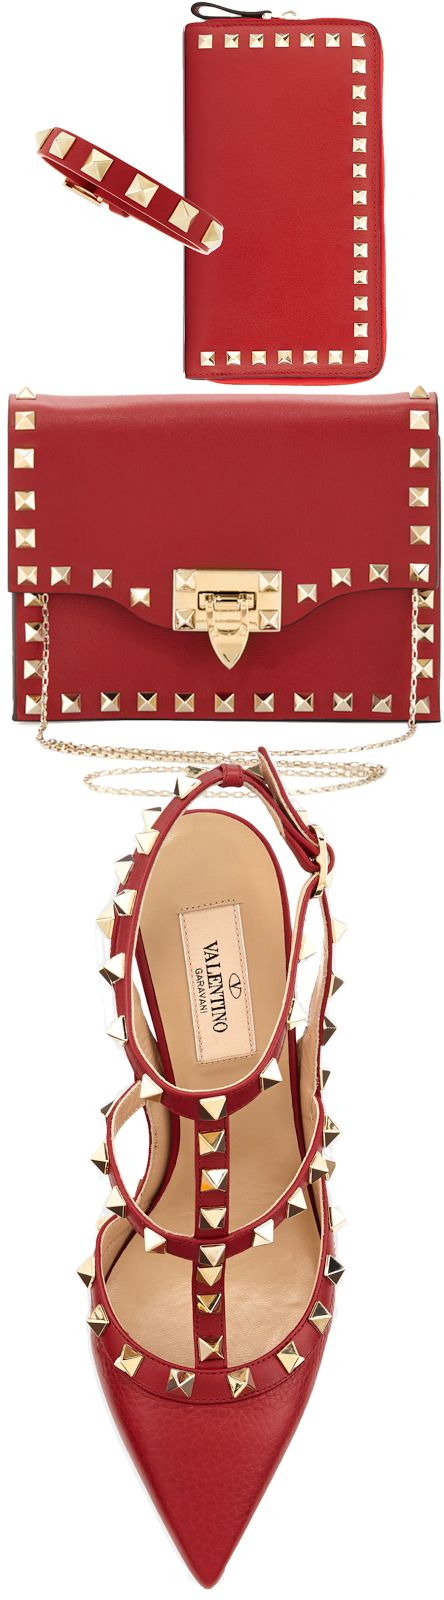 Valentino ... Oh my ... Also perfect christmas or valentines gift for that special lady in your life